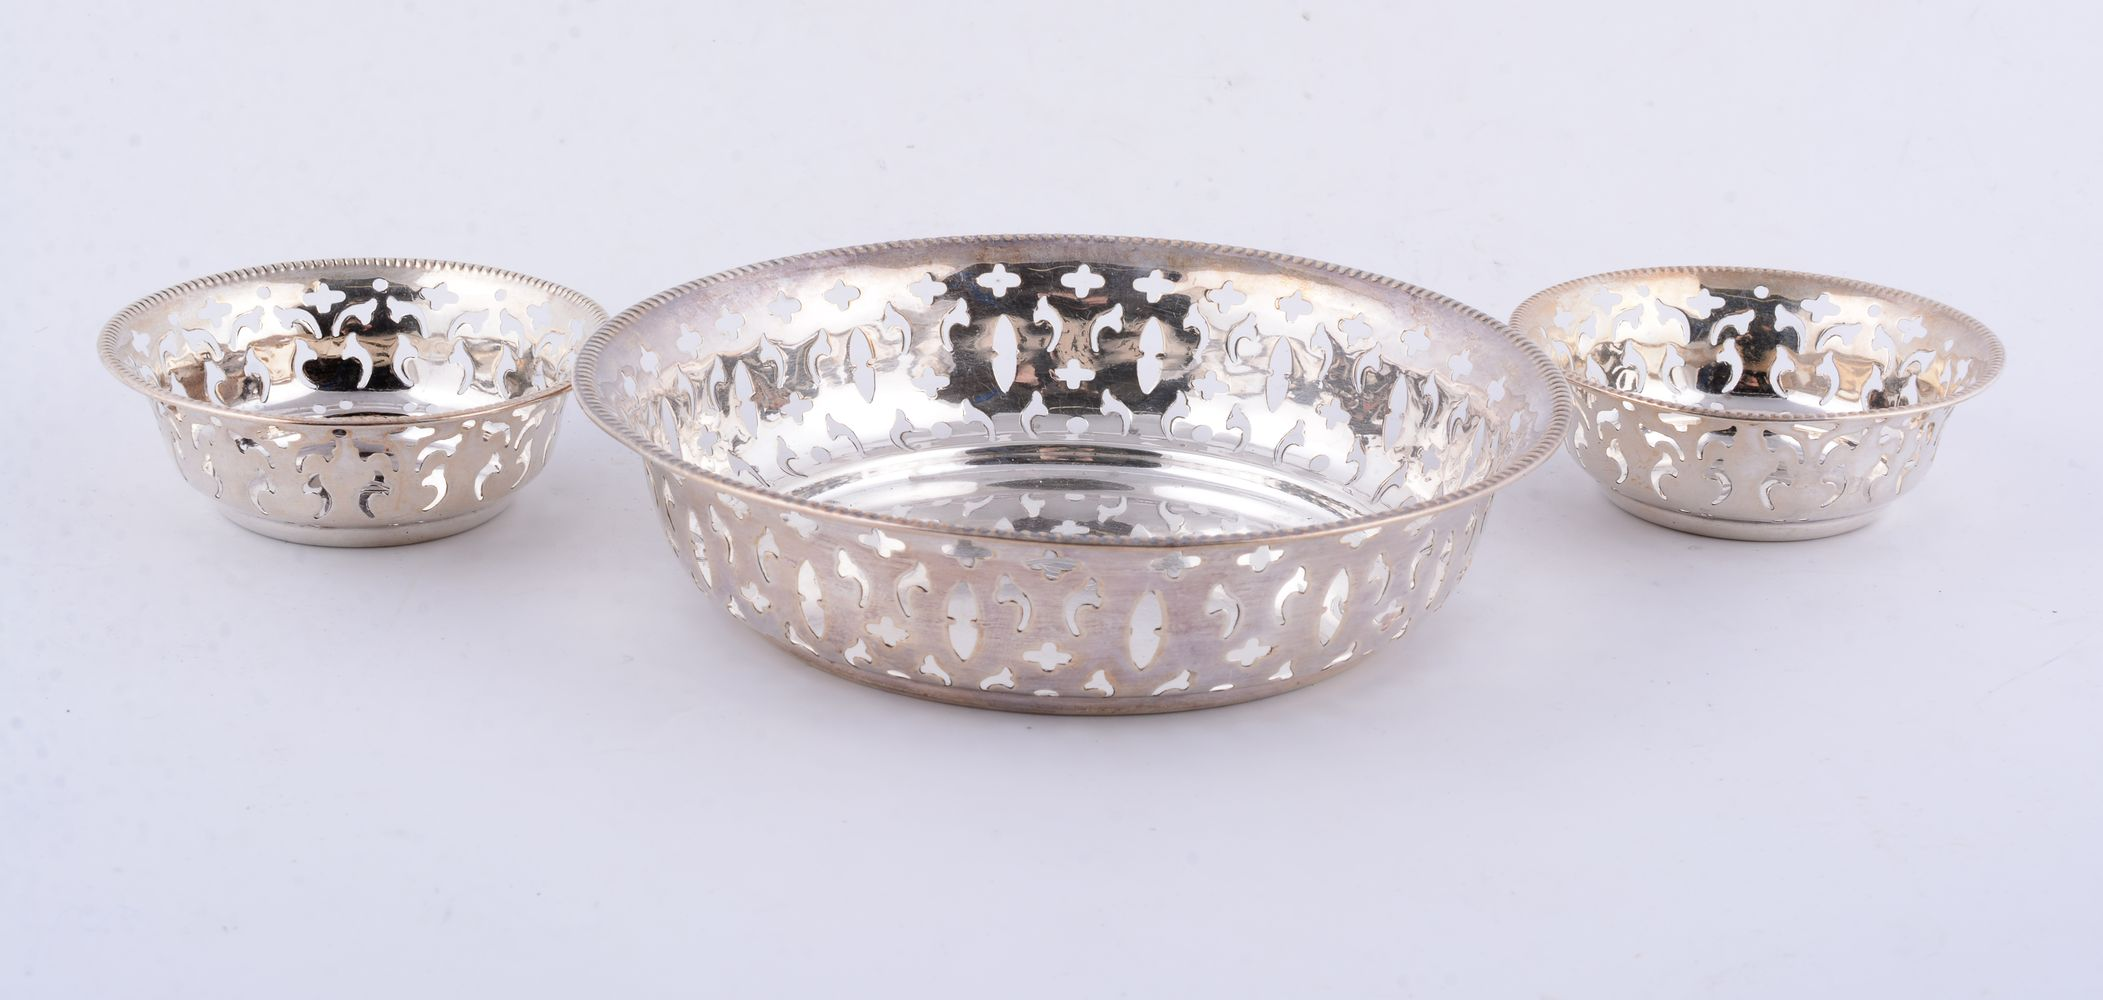 Lot 658 - A graduated set of three Canadian silver circular baskets by Toronto Silver Plate Co.